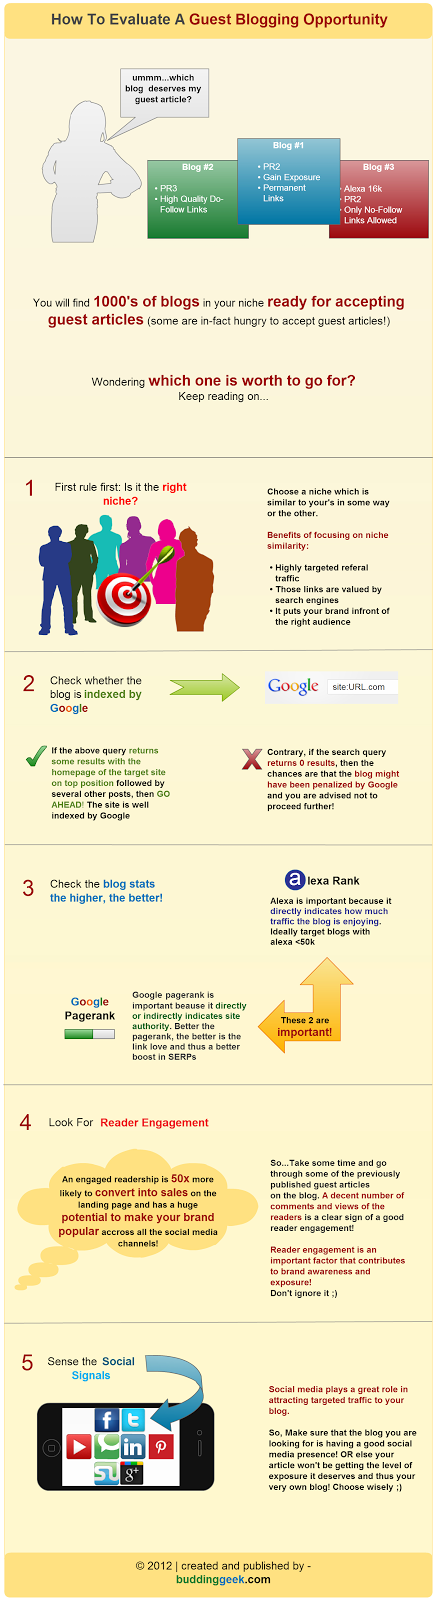 How to evaluate a guest blogging opportunity - Infographic